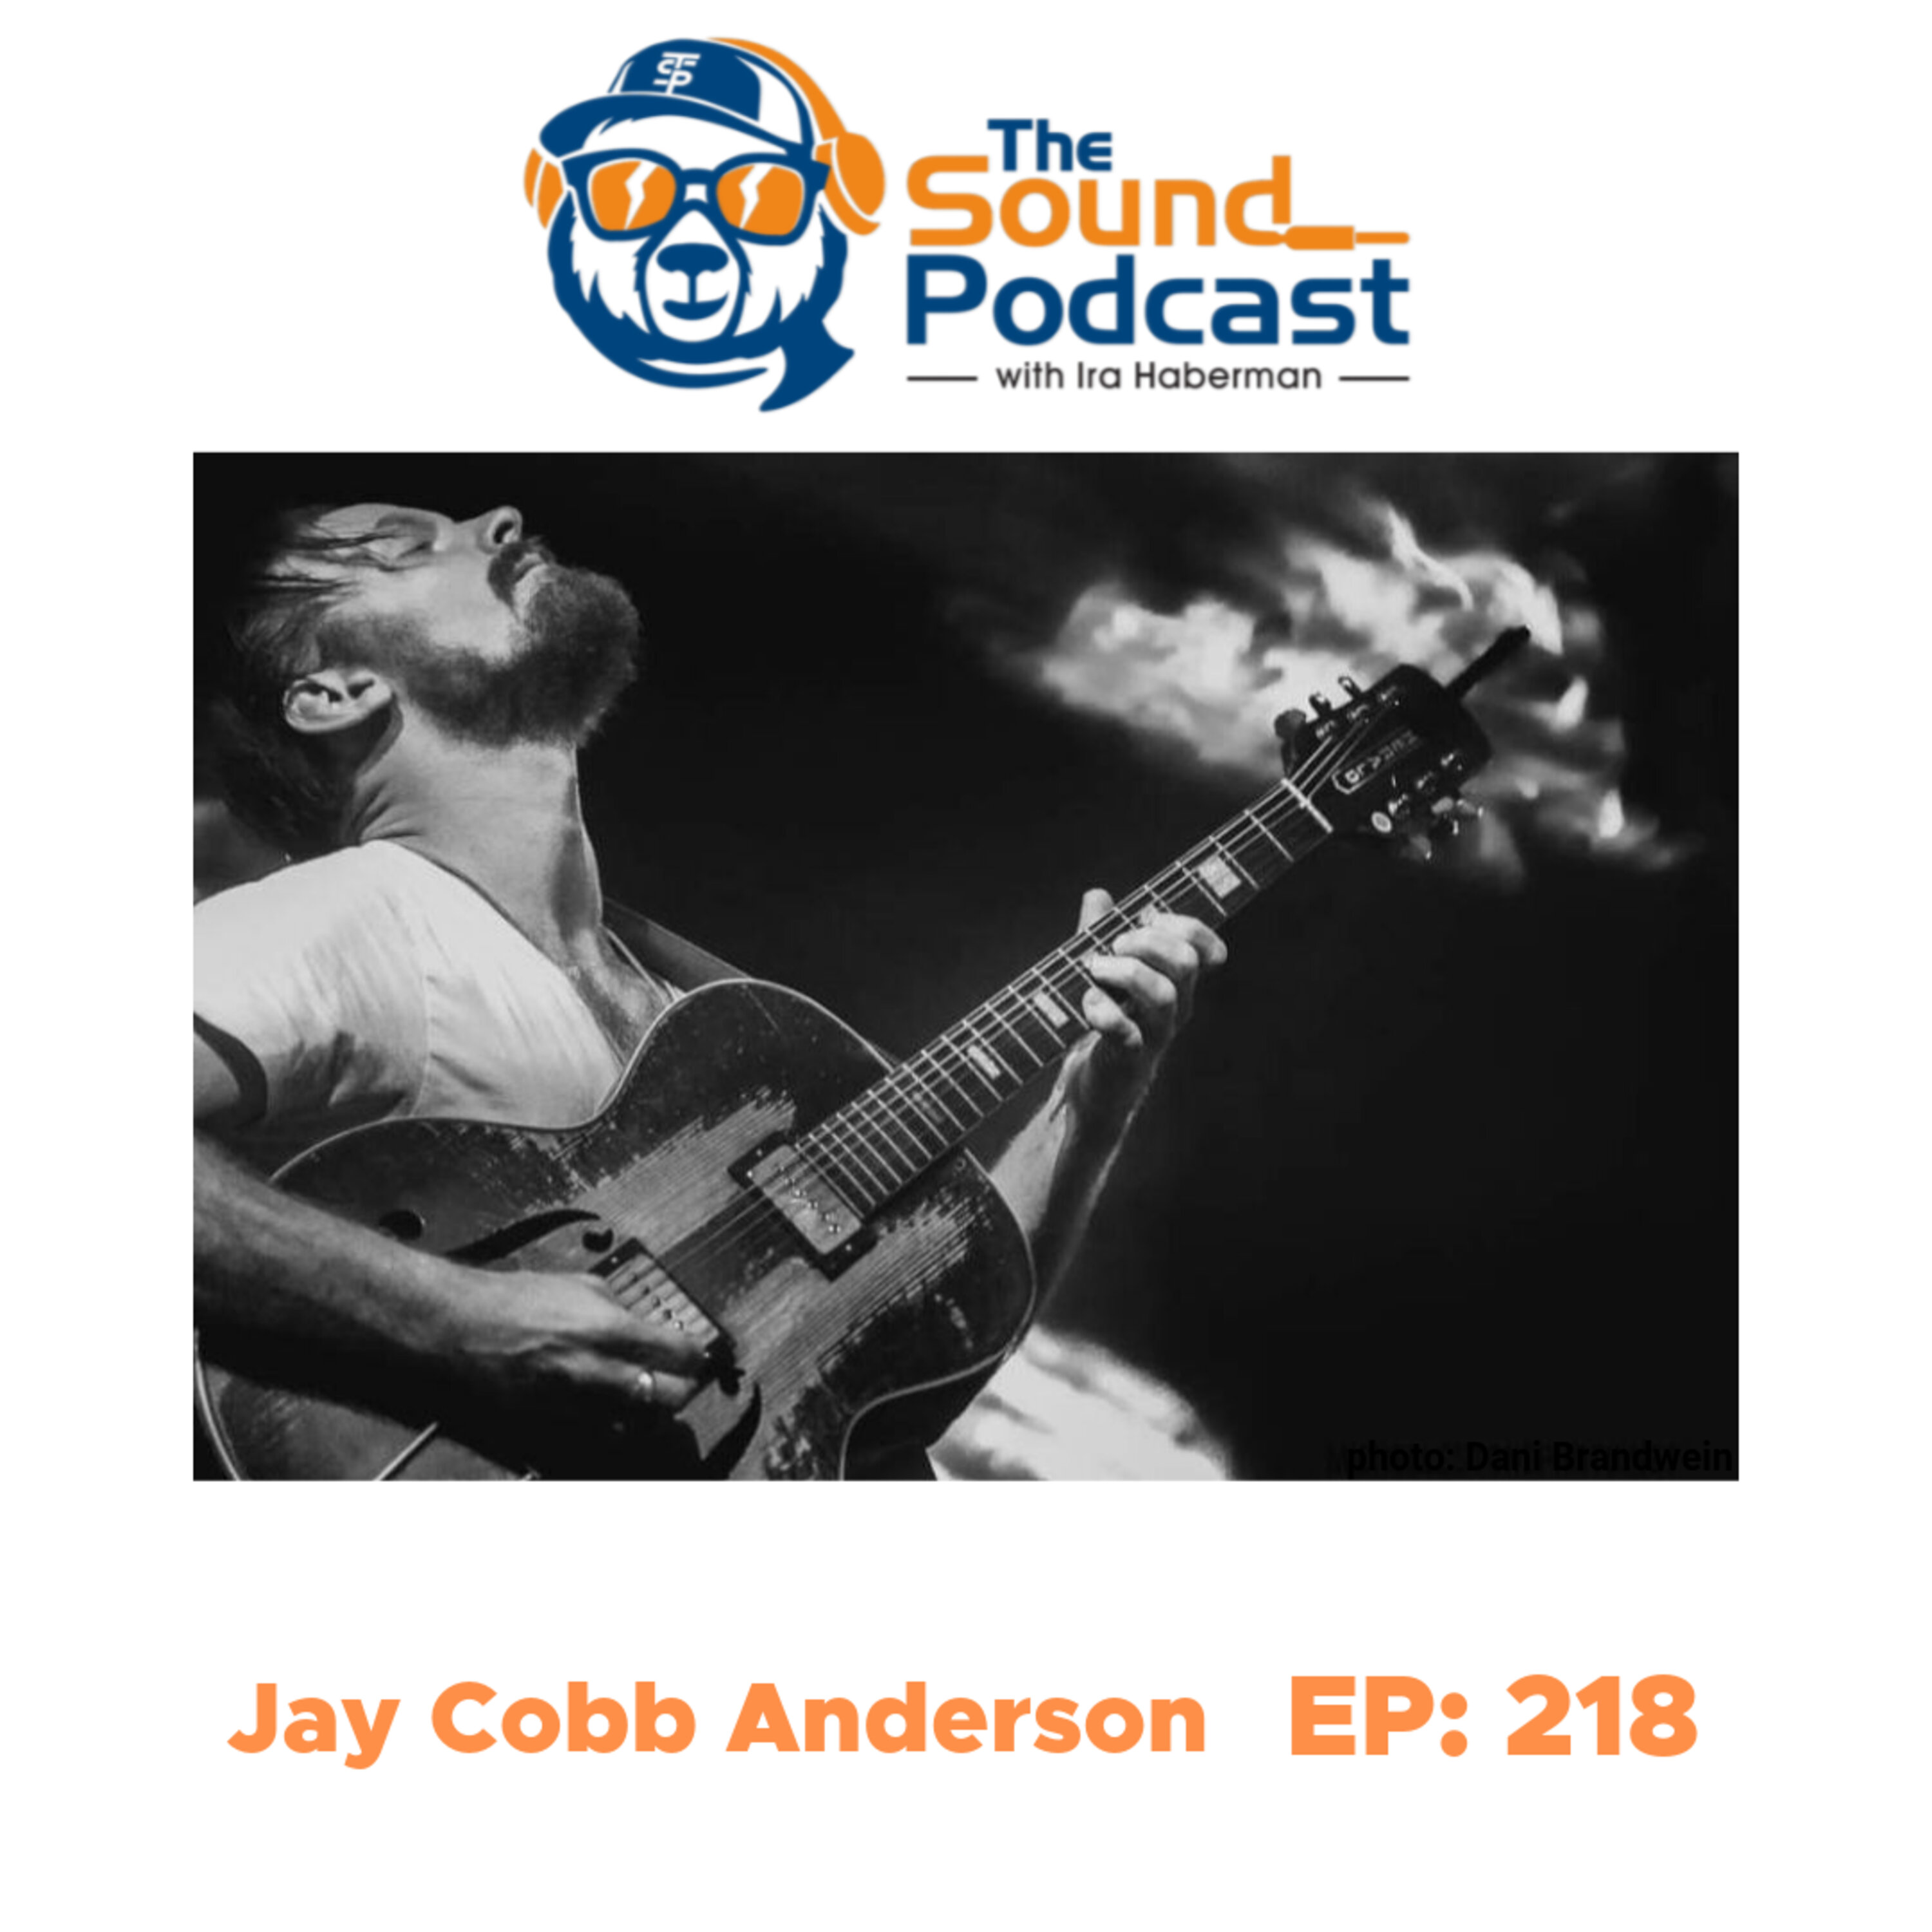 Jay Cobb Anderson